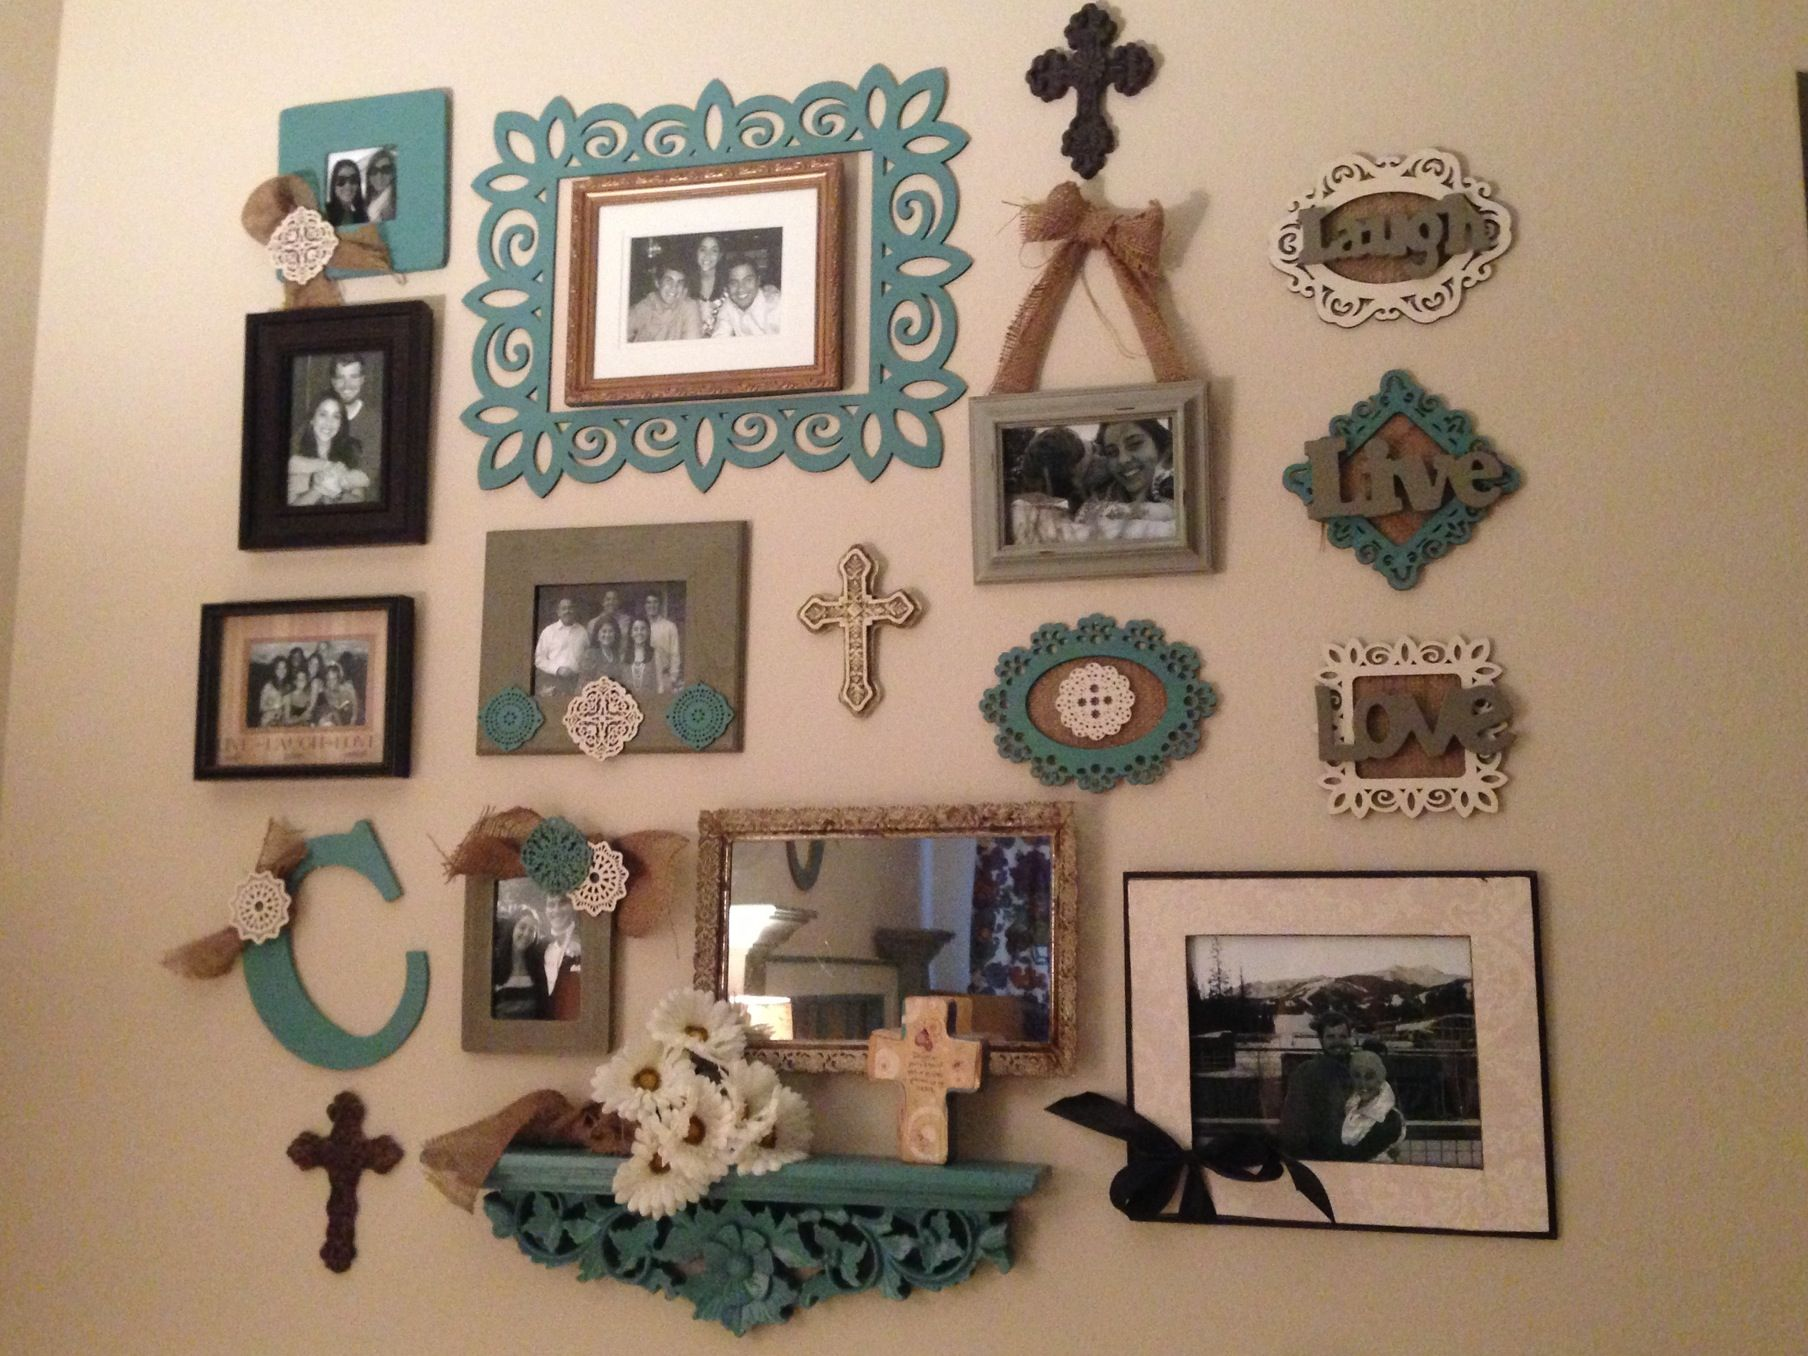 Wall Collage Made From Different Frames And Other Wall Decorations